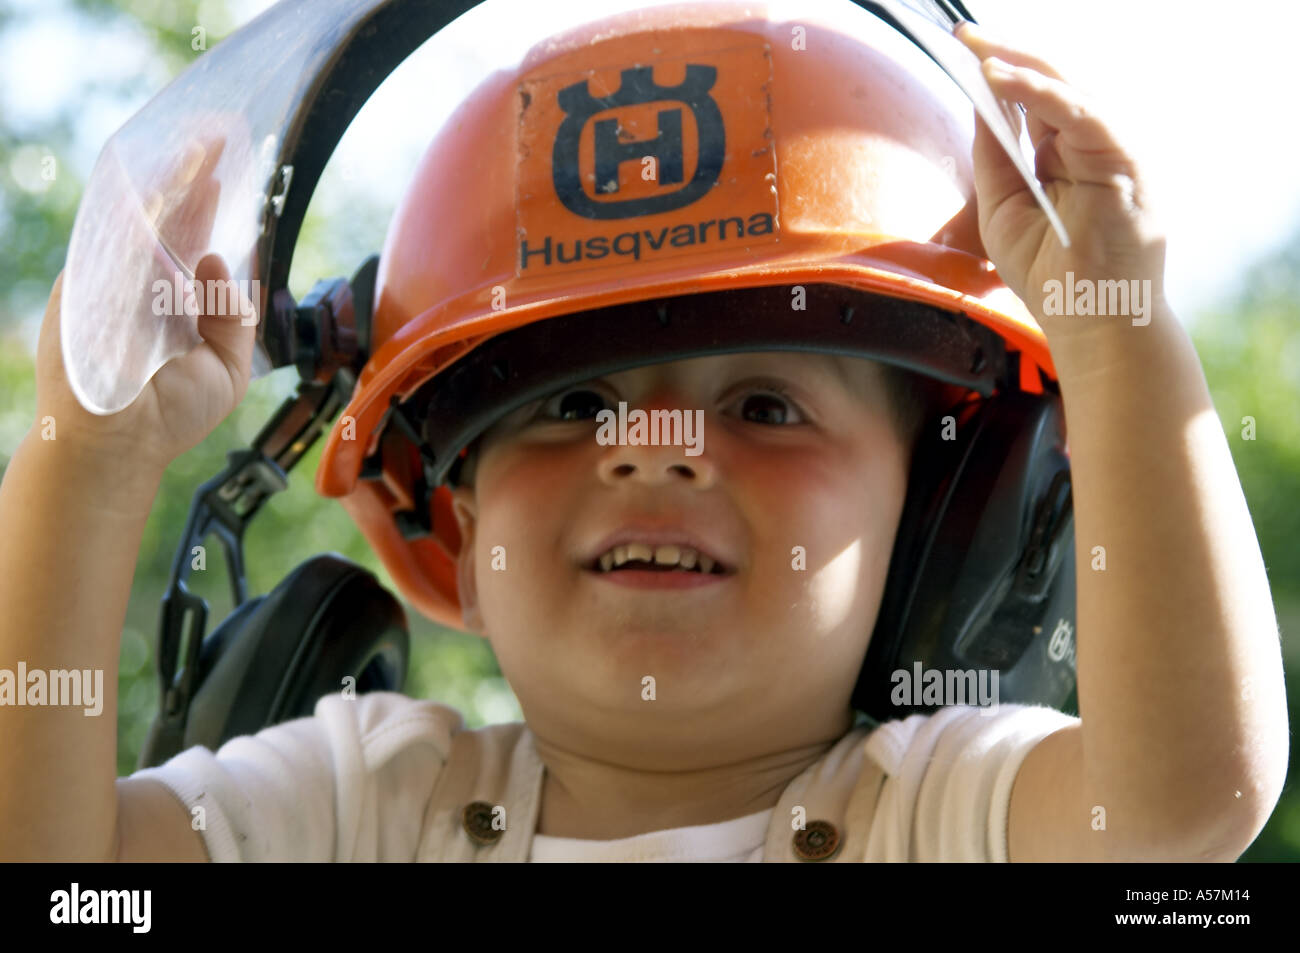 Young boy wearing orange protective Husqvarna construction hard hat and ear protectors Humourous amusing playing laughing an - Stock Image